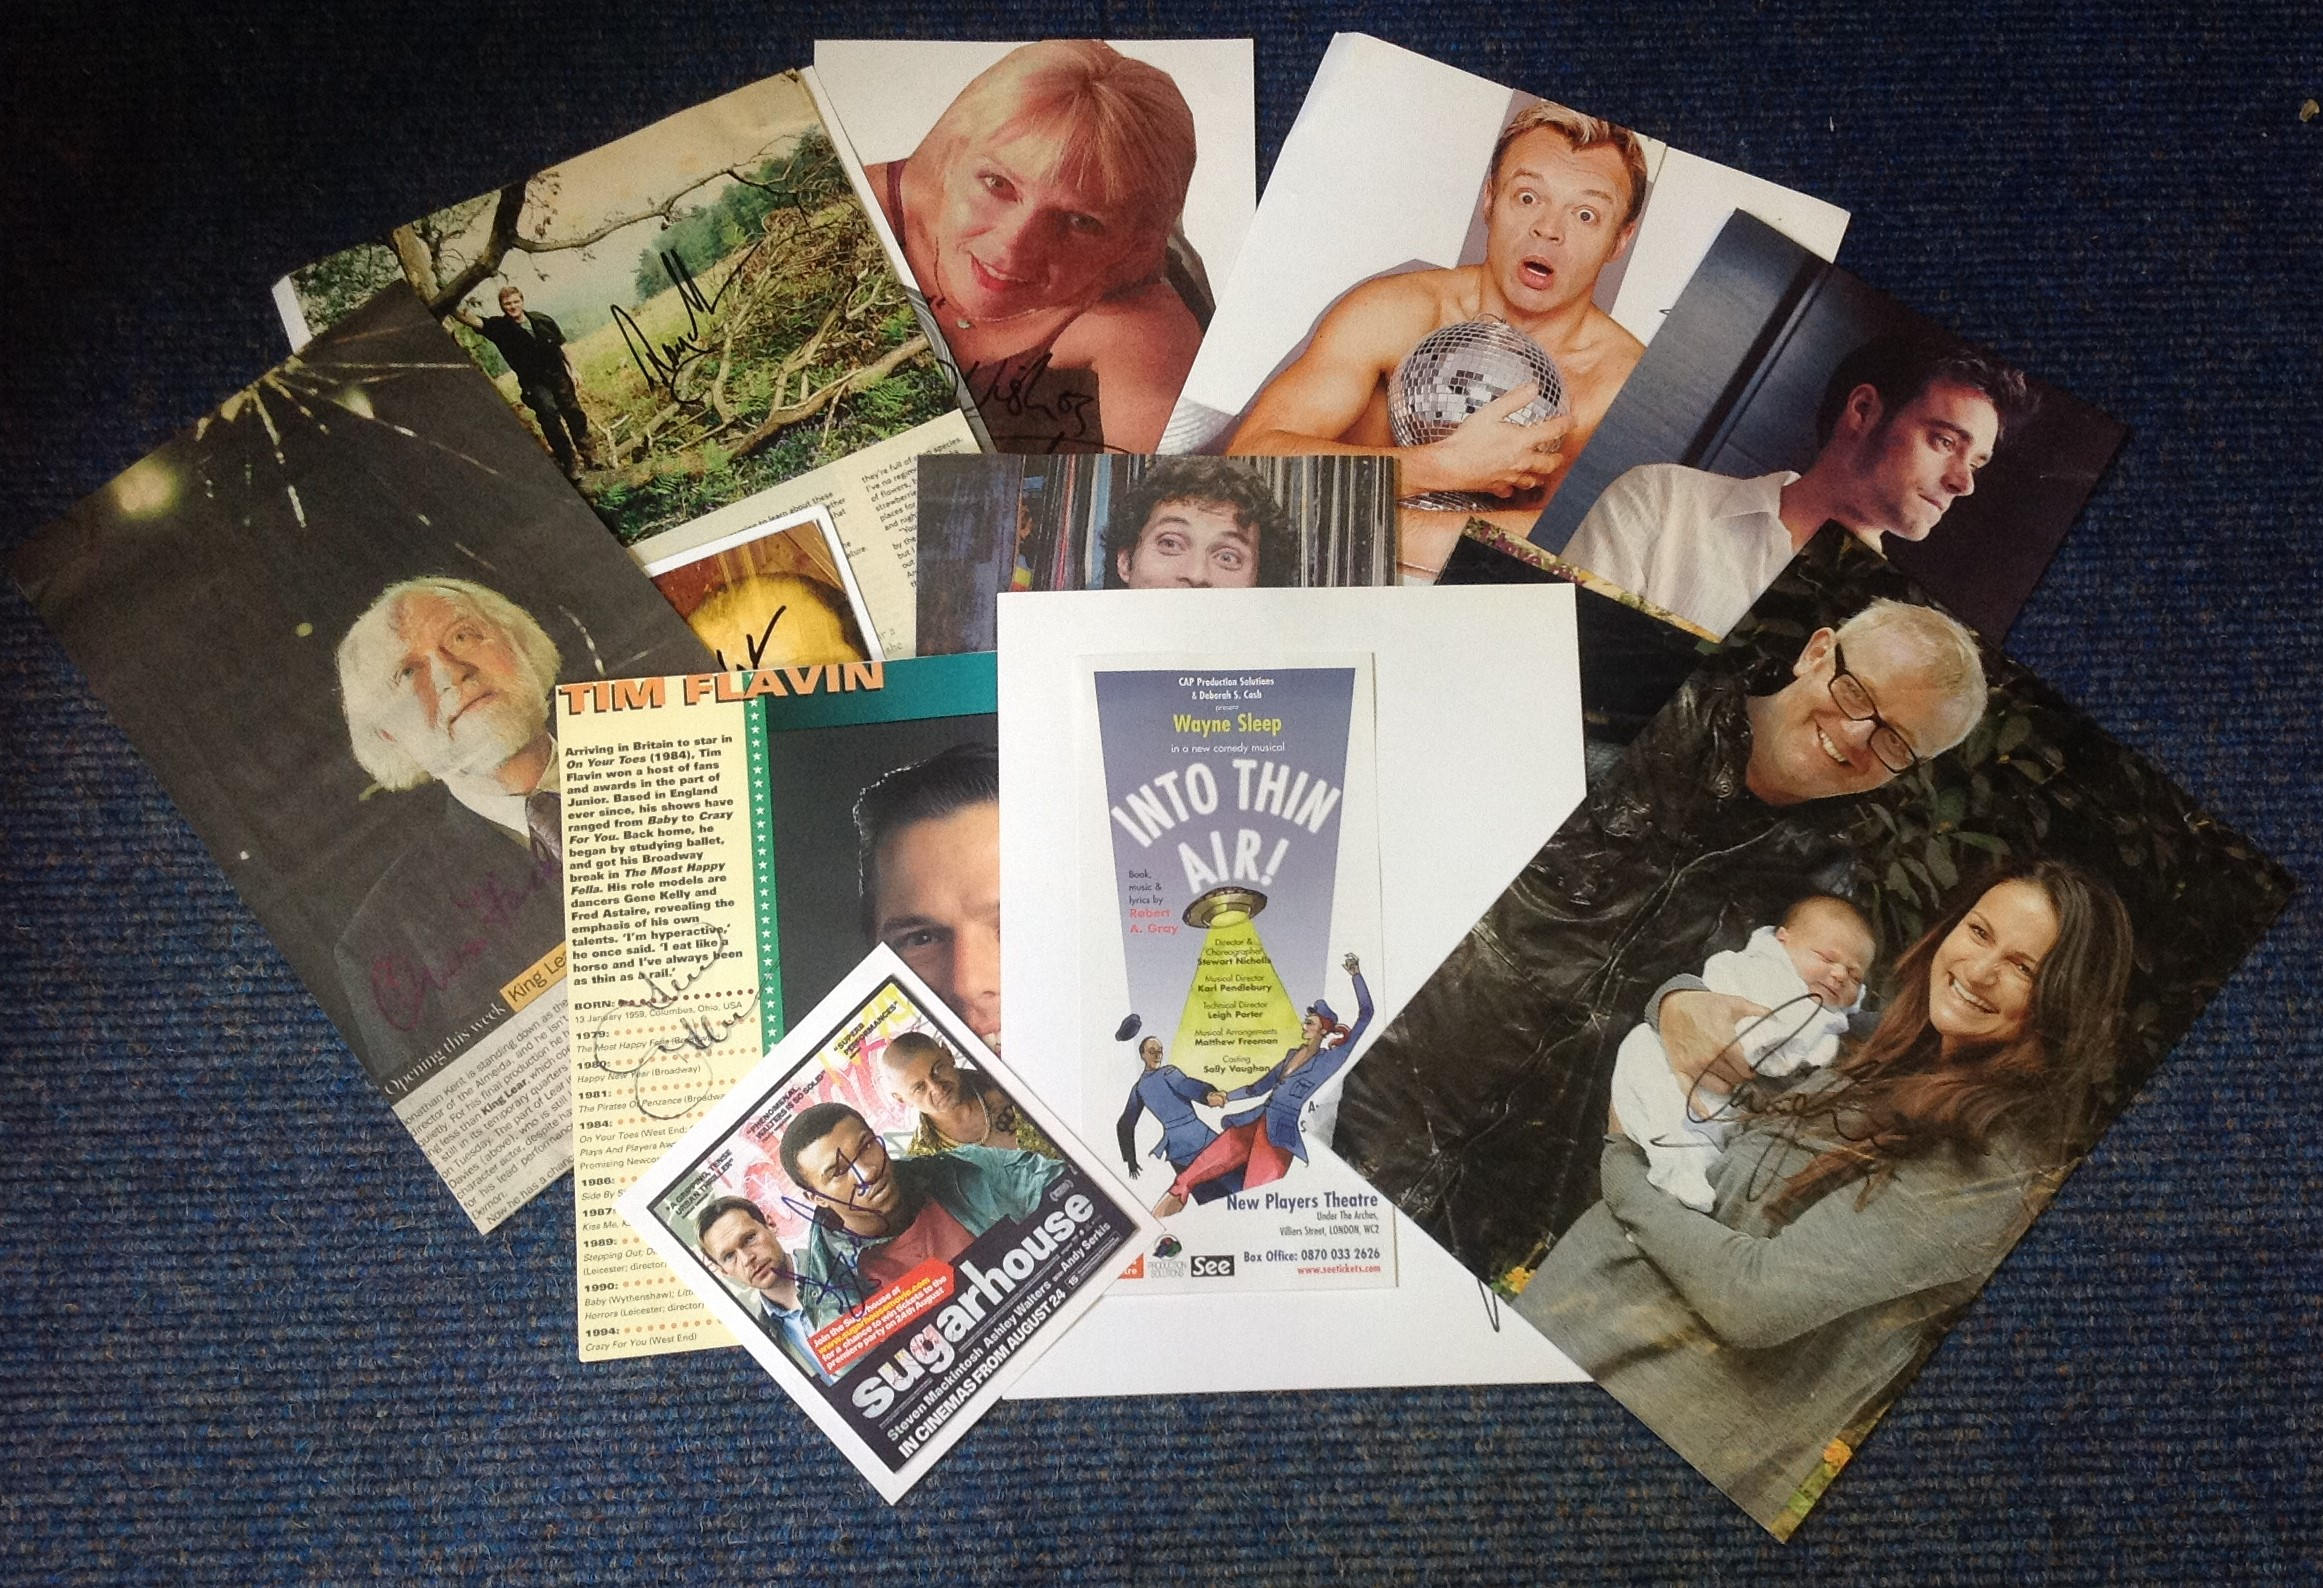 Lot 17 - TV/film signed collection. 15 items. Assortment of magazine photos and flyers. Some of names